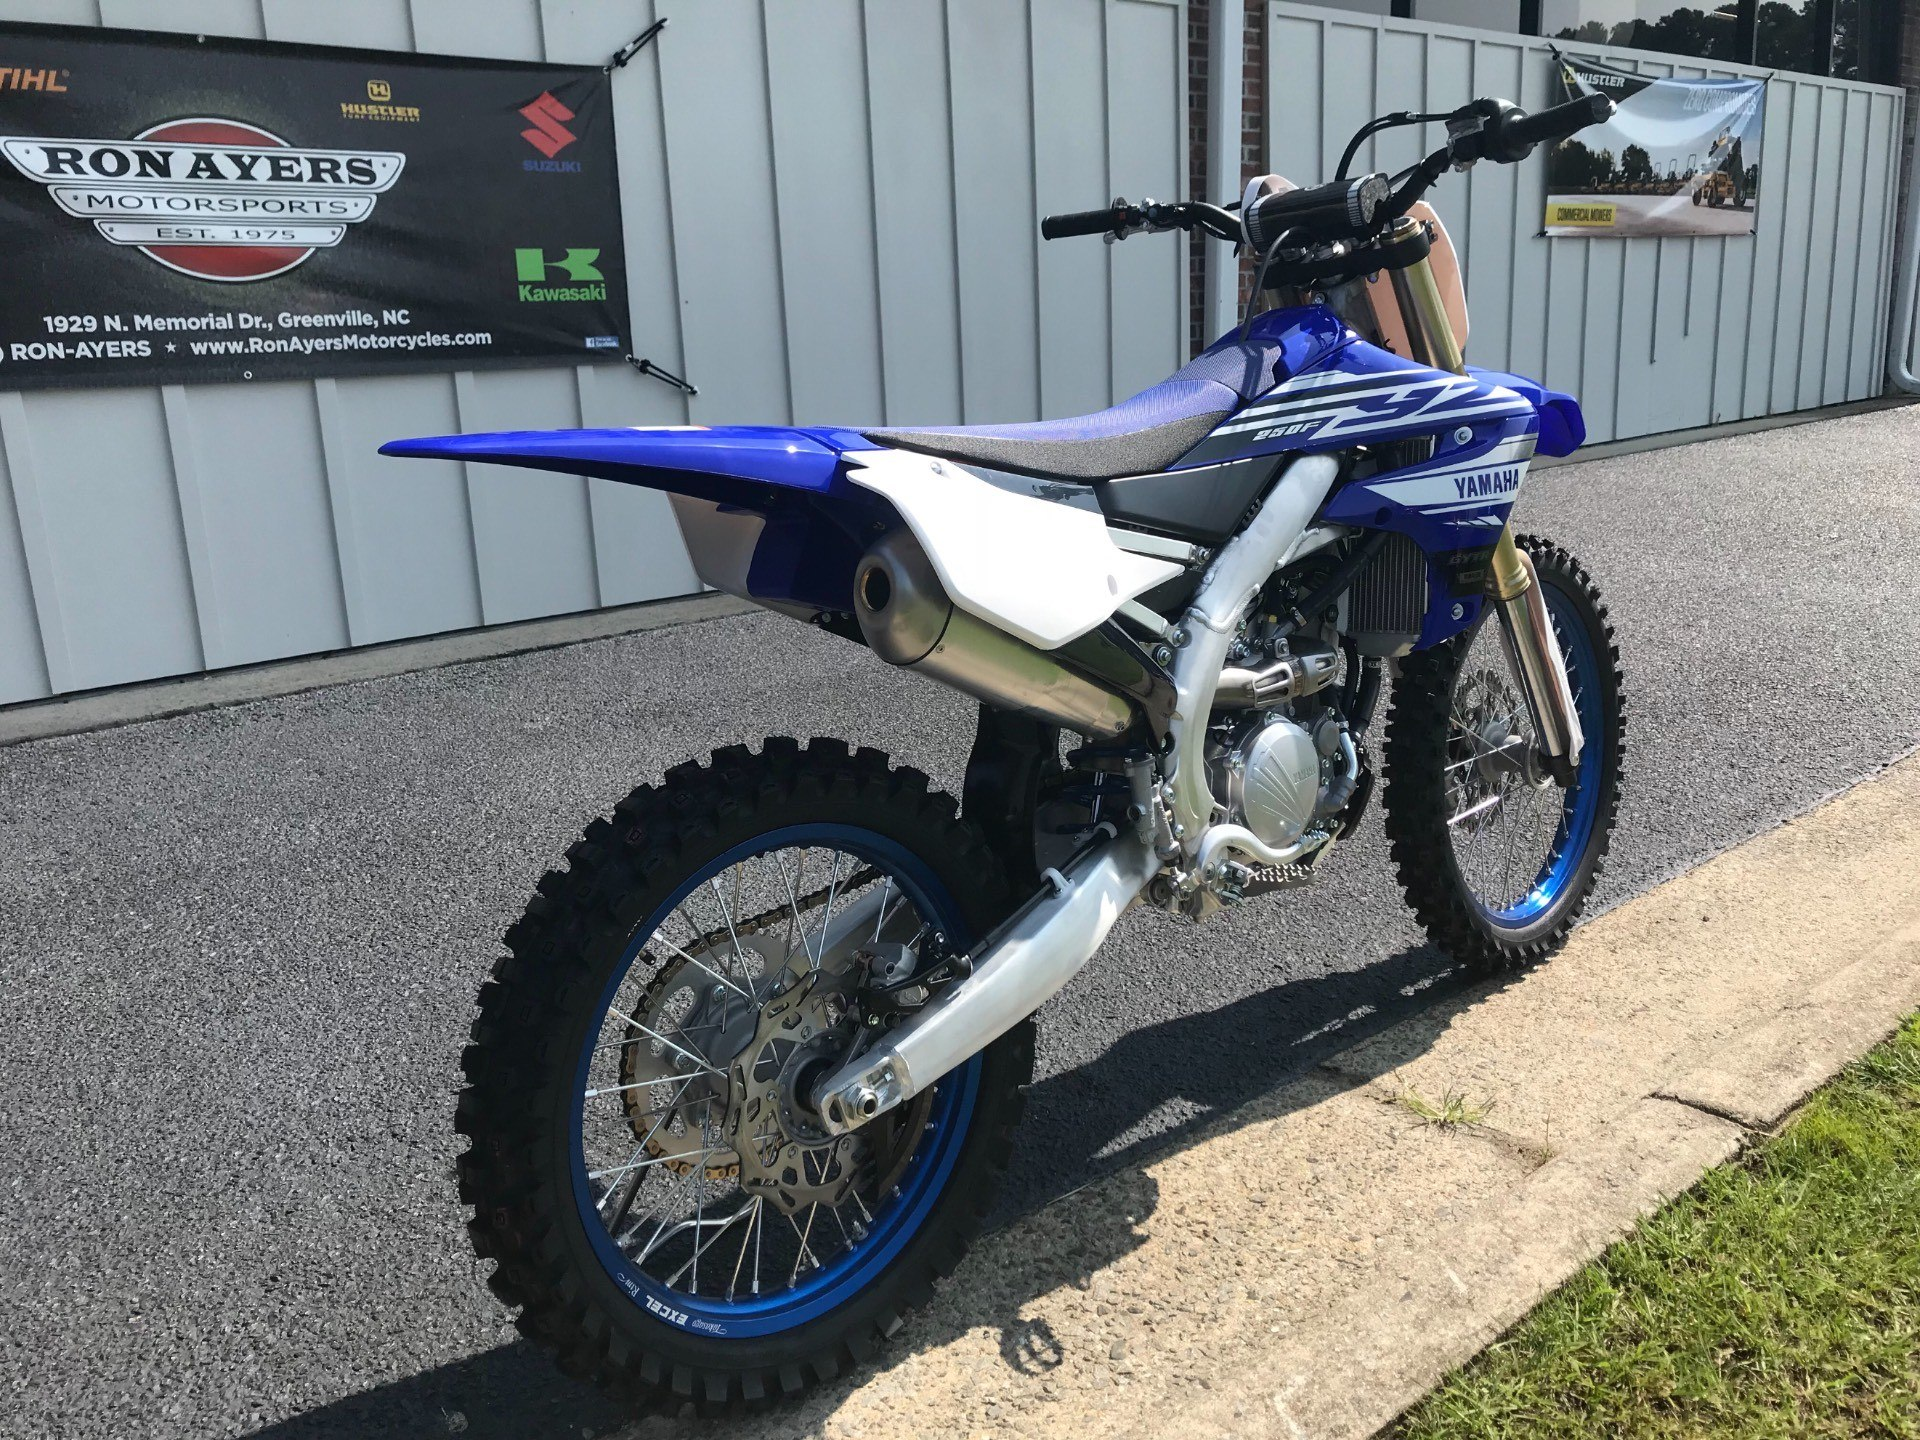 new 2019 yamaha yz250f motorcycles in greenville nc. Black Bedroom Furniture Sets. Home Design Ideas